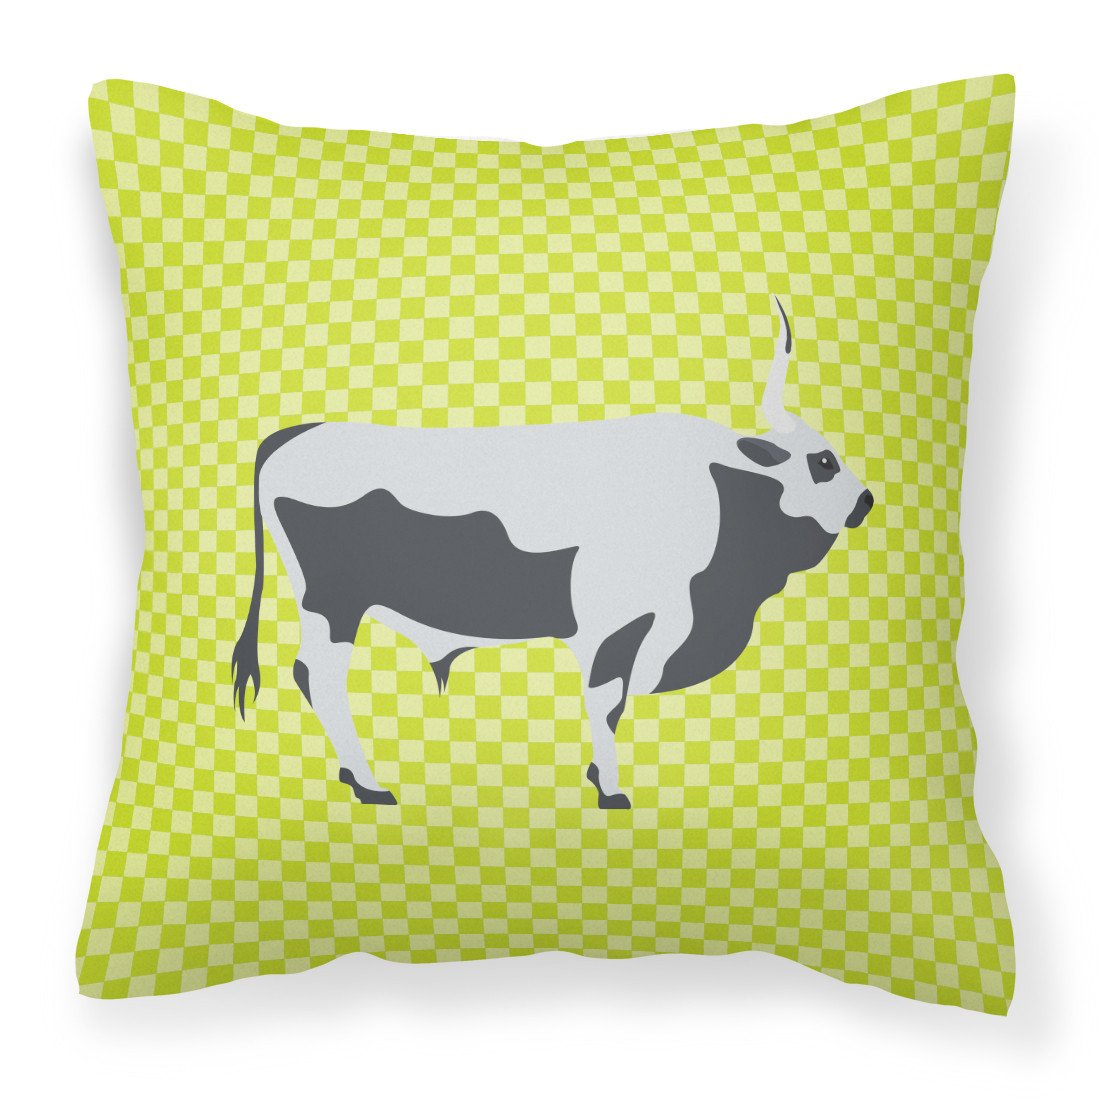 Hungarian Grey Steppe Cow Green Fabric Decorative Pillow BB7650PW1818 by Caroline's Treasures